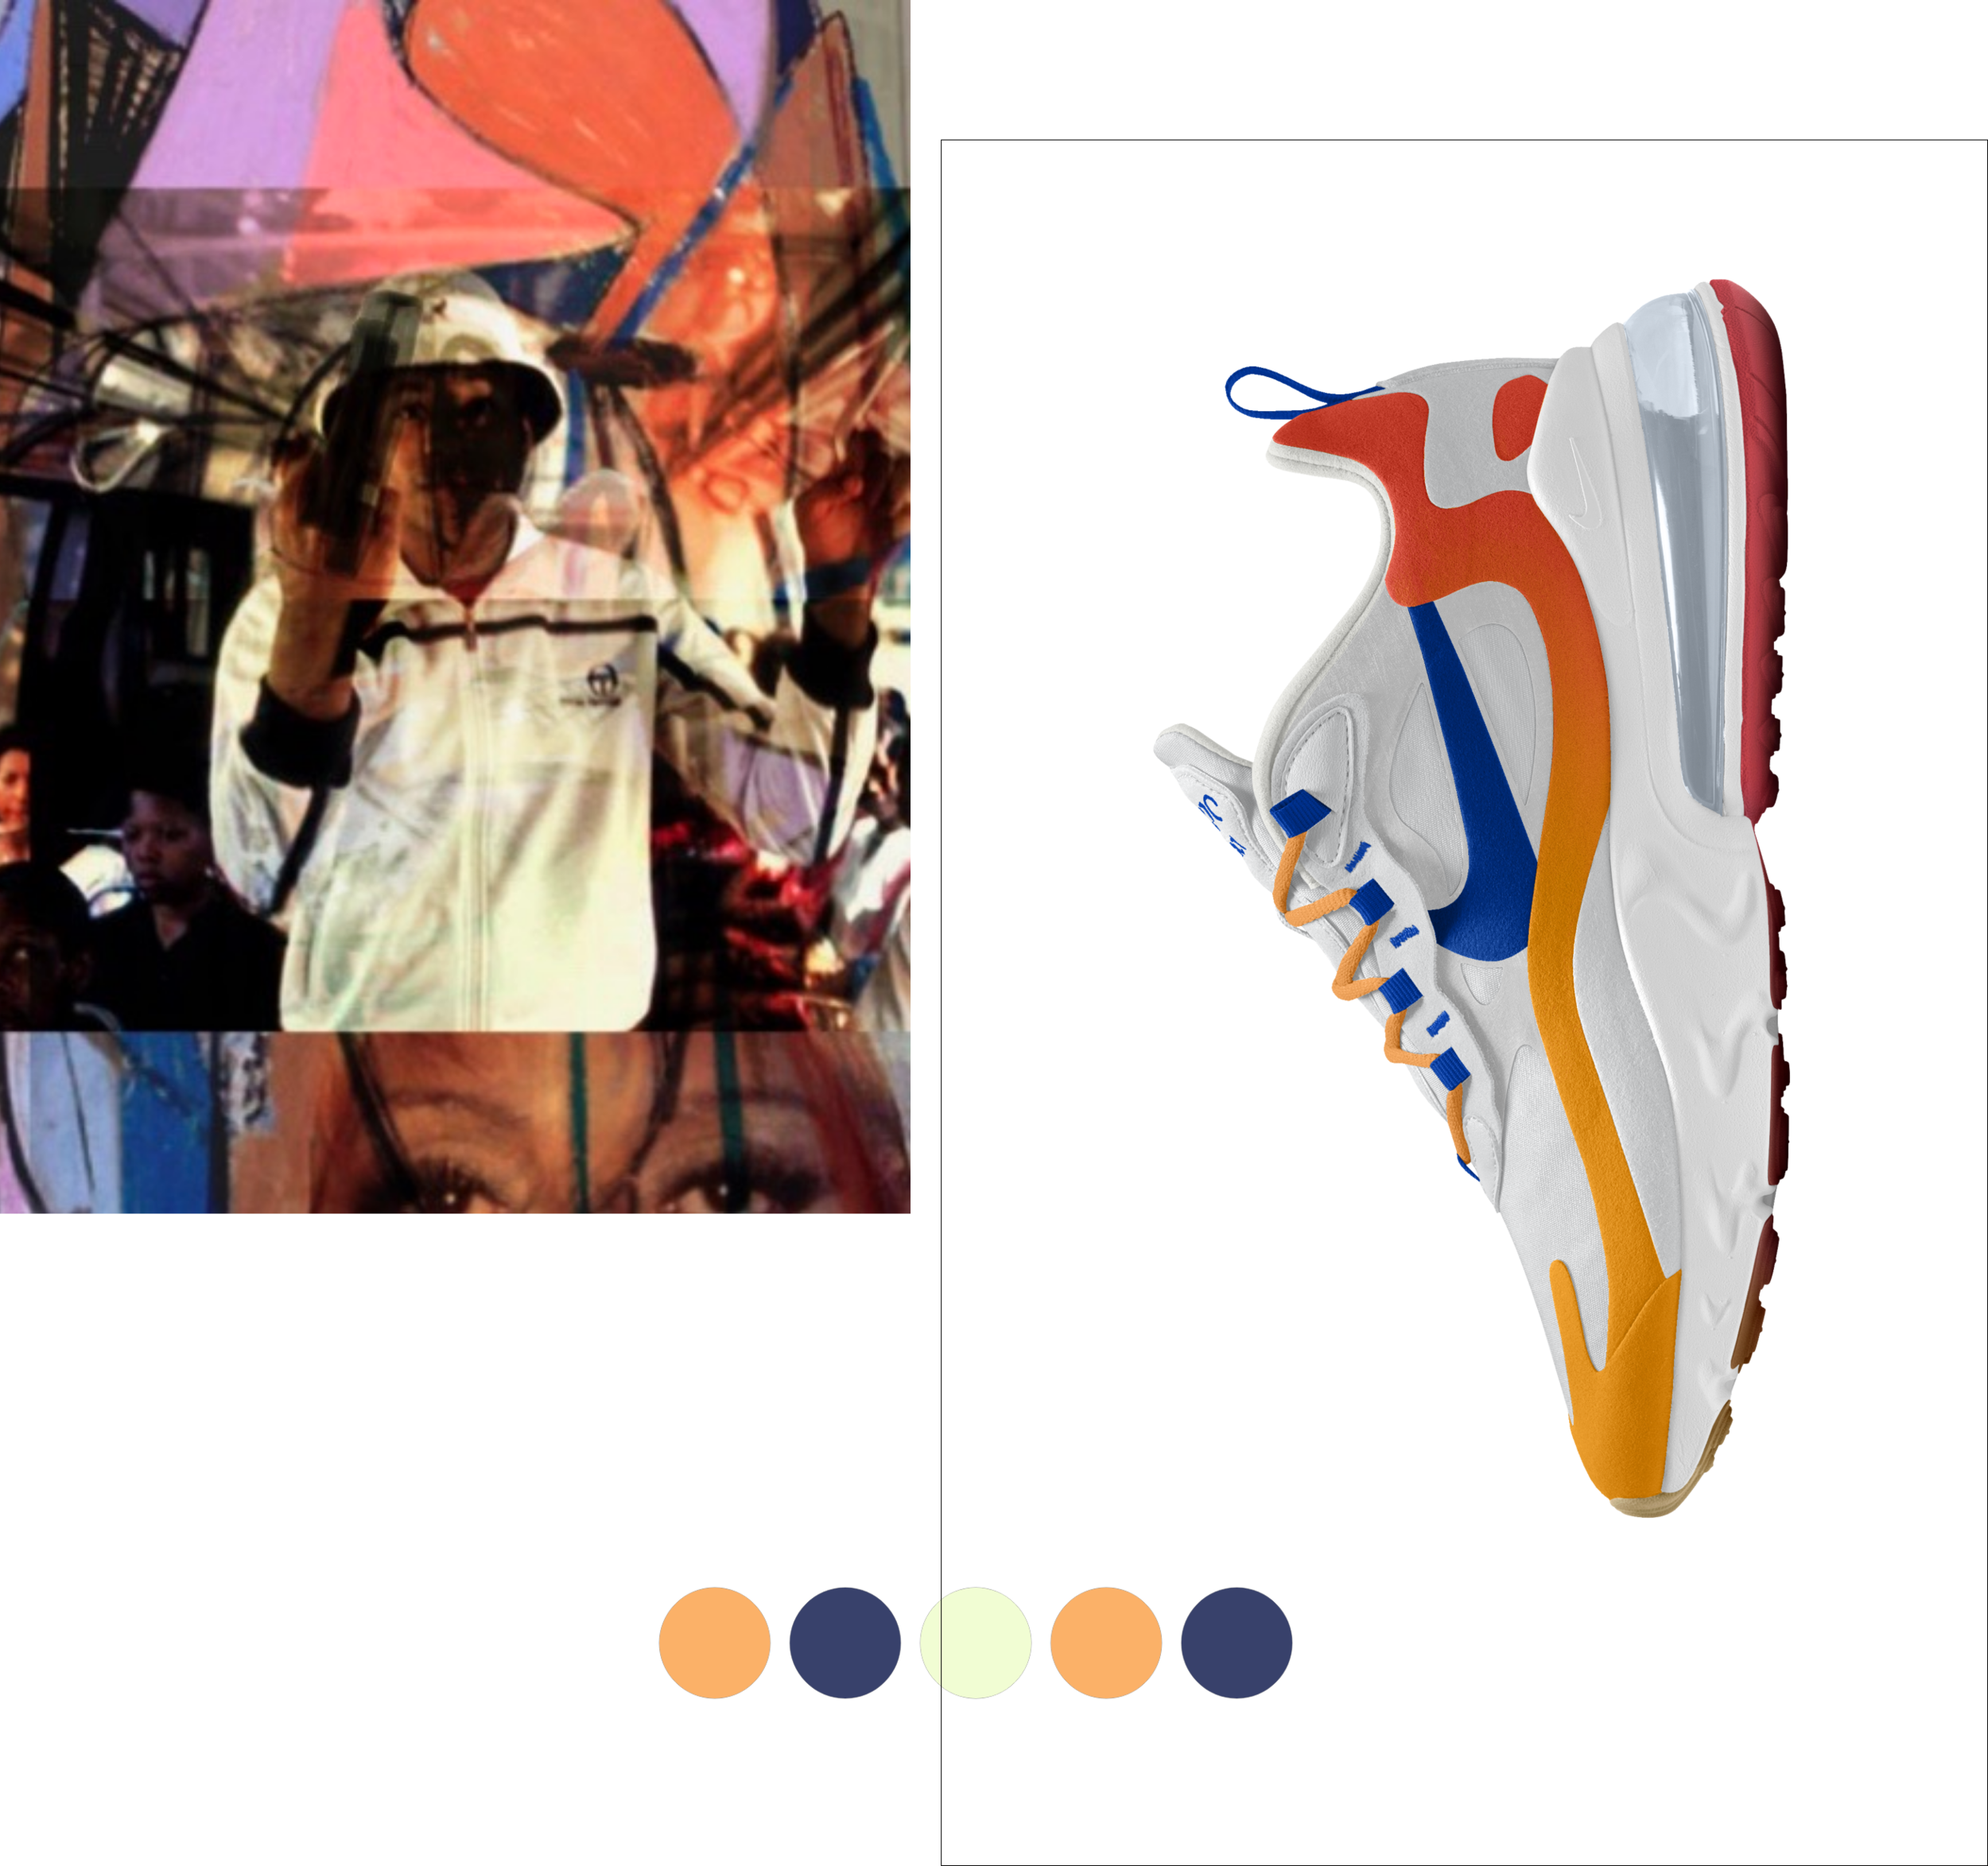 collageWithShoe (4).png